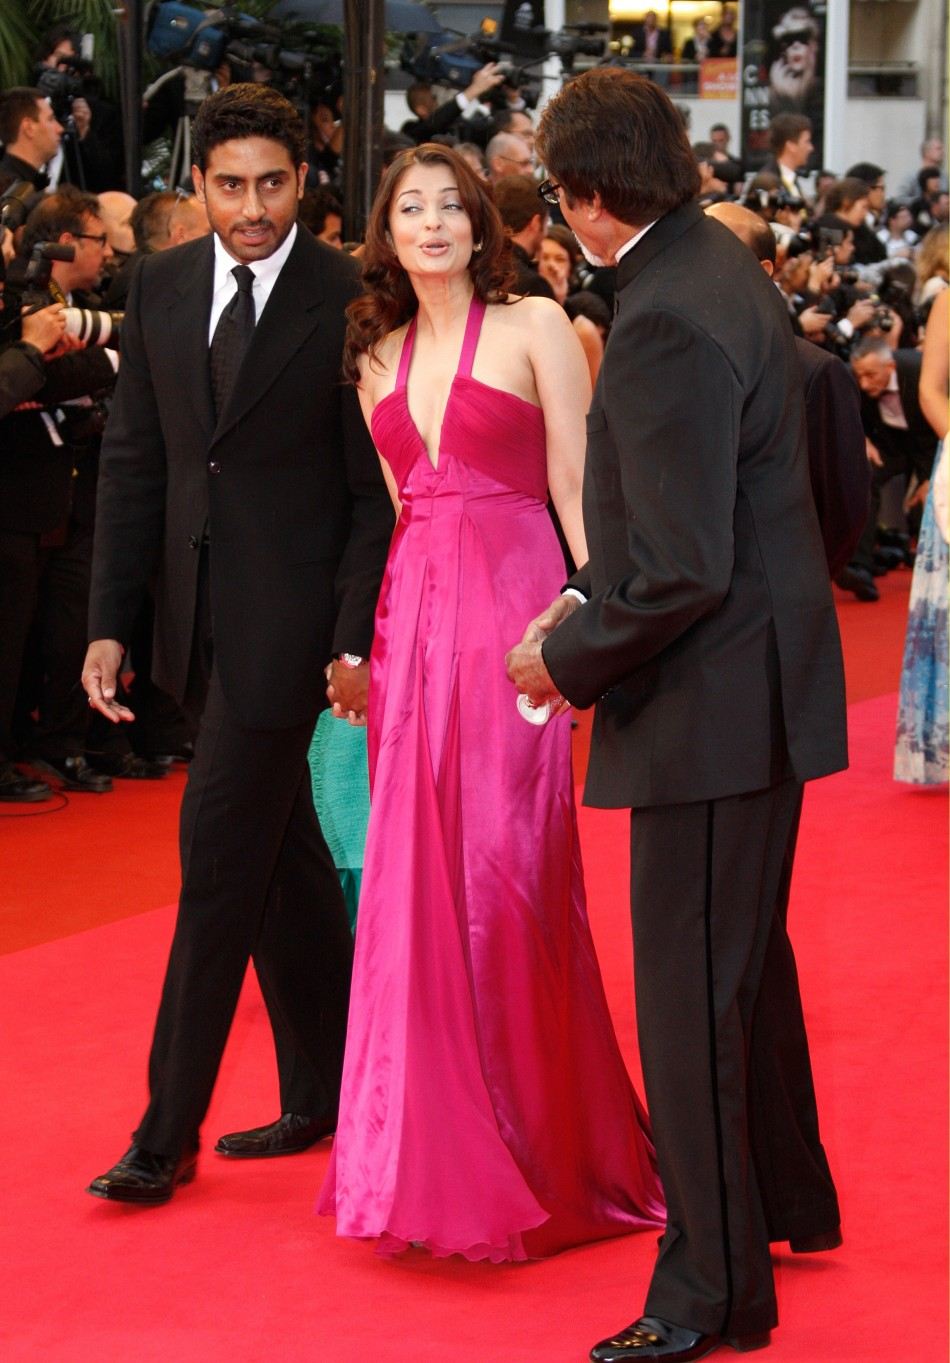 Indian actors Aishwarya Rai and Abhishek Bachchan arrive for screening of quotVicky Cristina Barcelonaquot at 61st Cannes Film Festival 2008